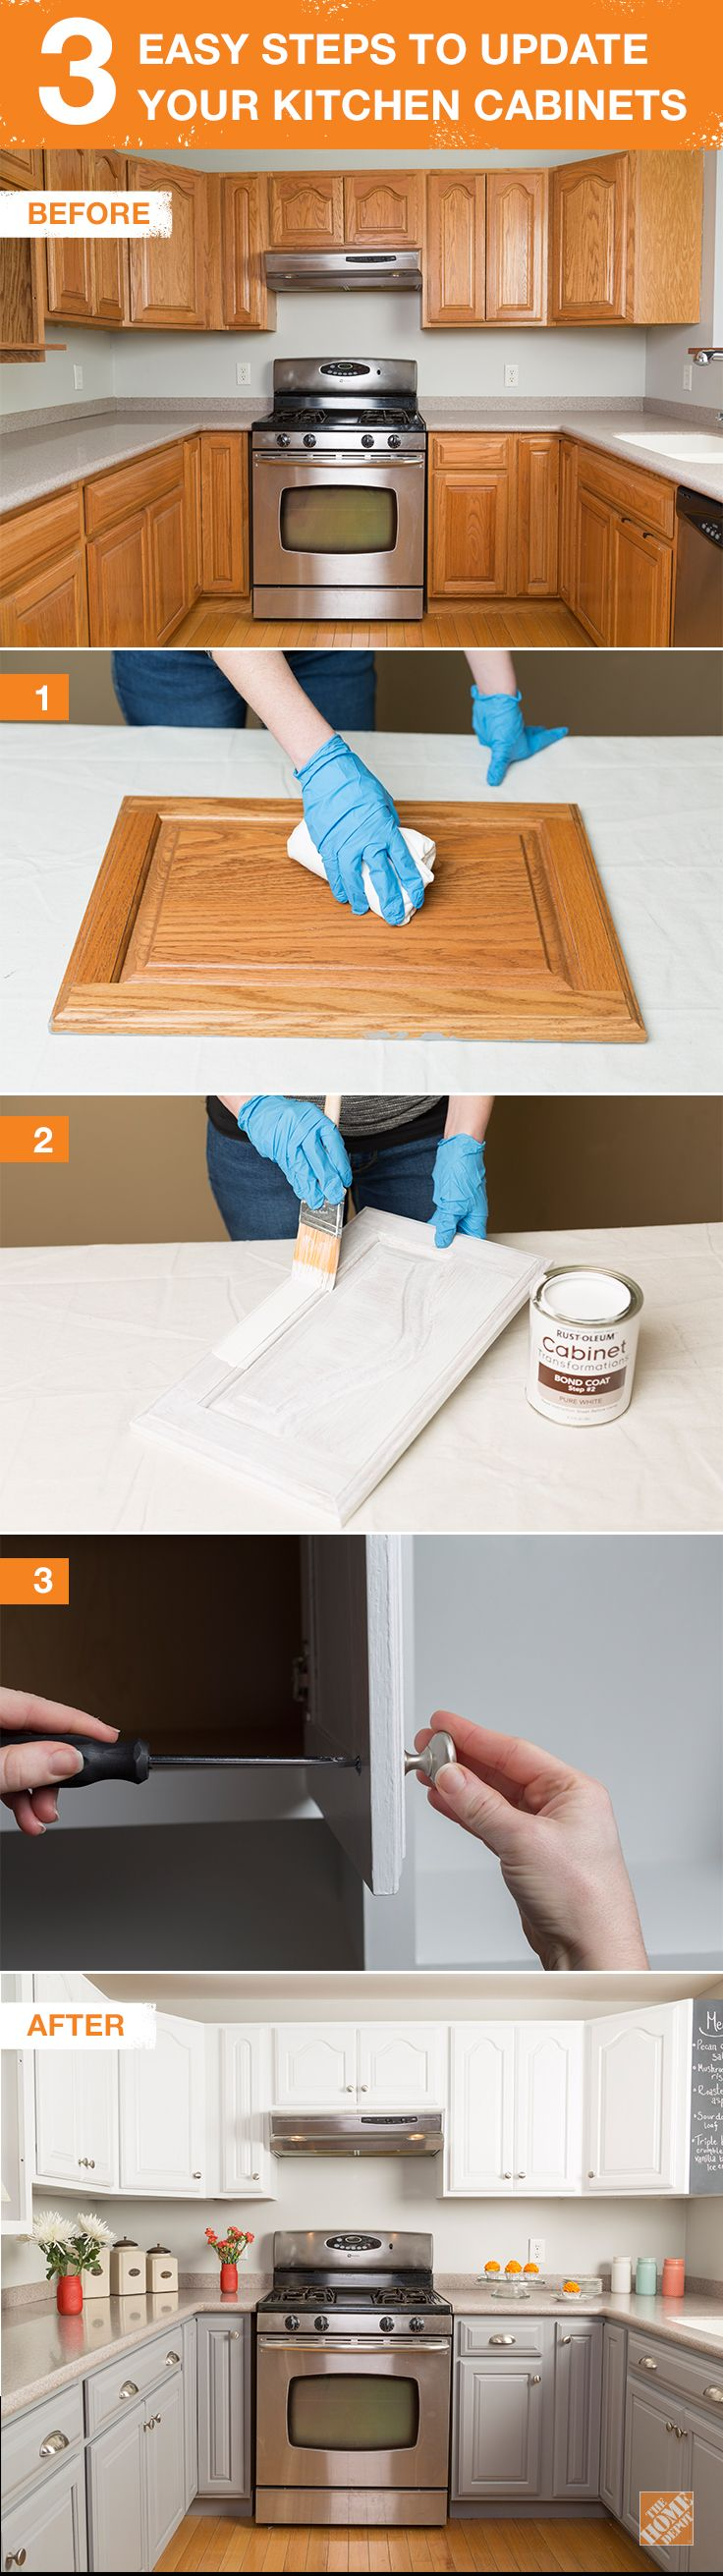 Get the look of new kitchen cabinets the easy way diy tutorial update your kitchen cabinets in 3 easy steps with rust oleum paint you can give your kitchen a new refreshed look save time and money with this diy solutioingenieria Images